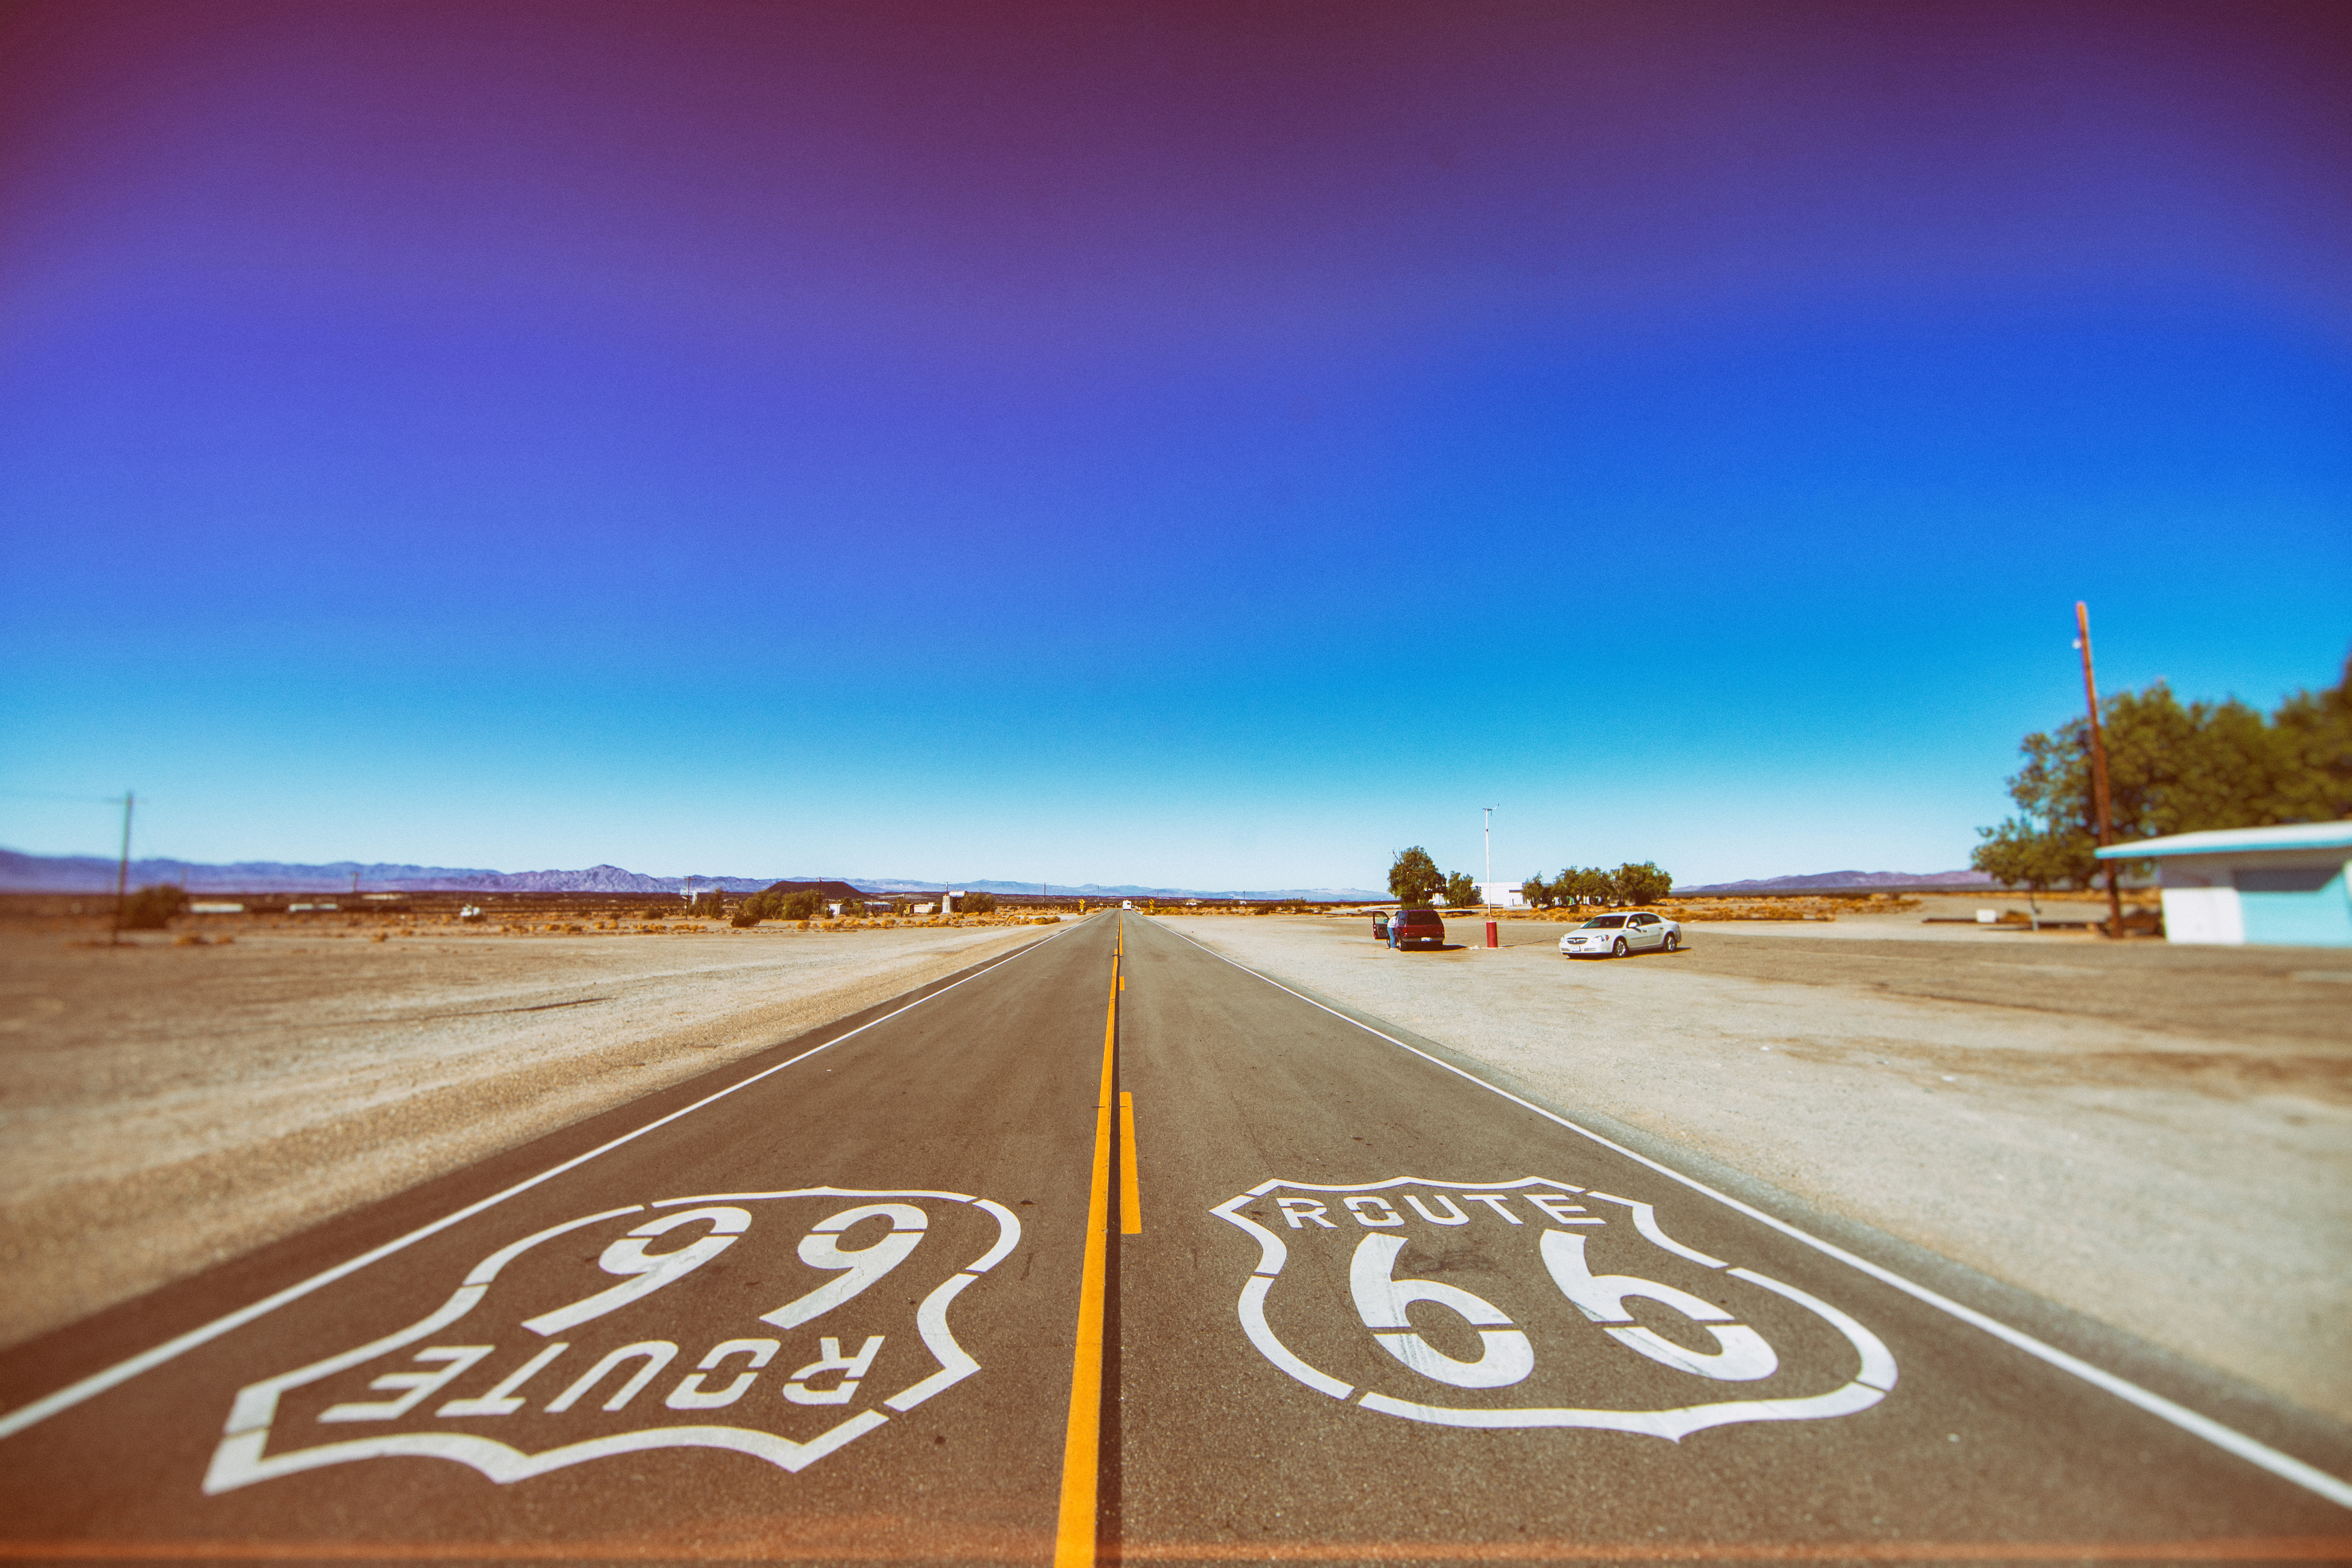 route 66 road 1574938523 - Route 66 Road -